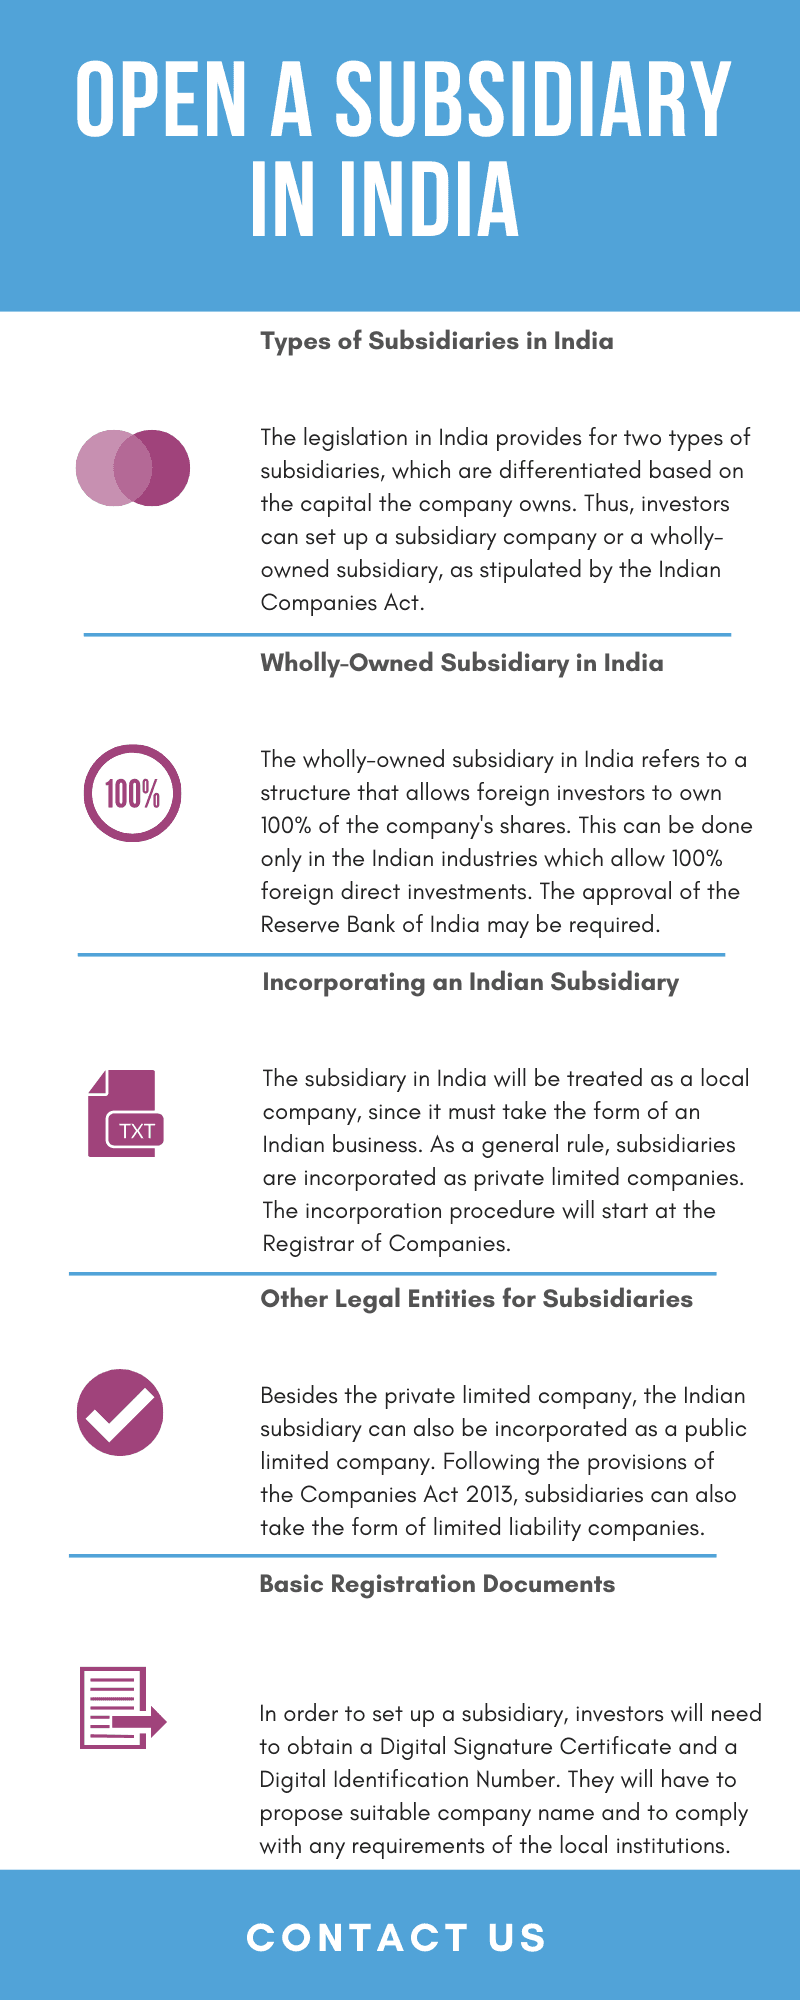 Open a Subsidiary in India